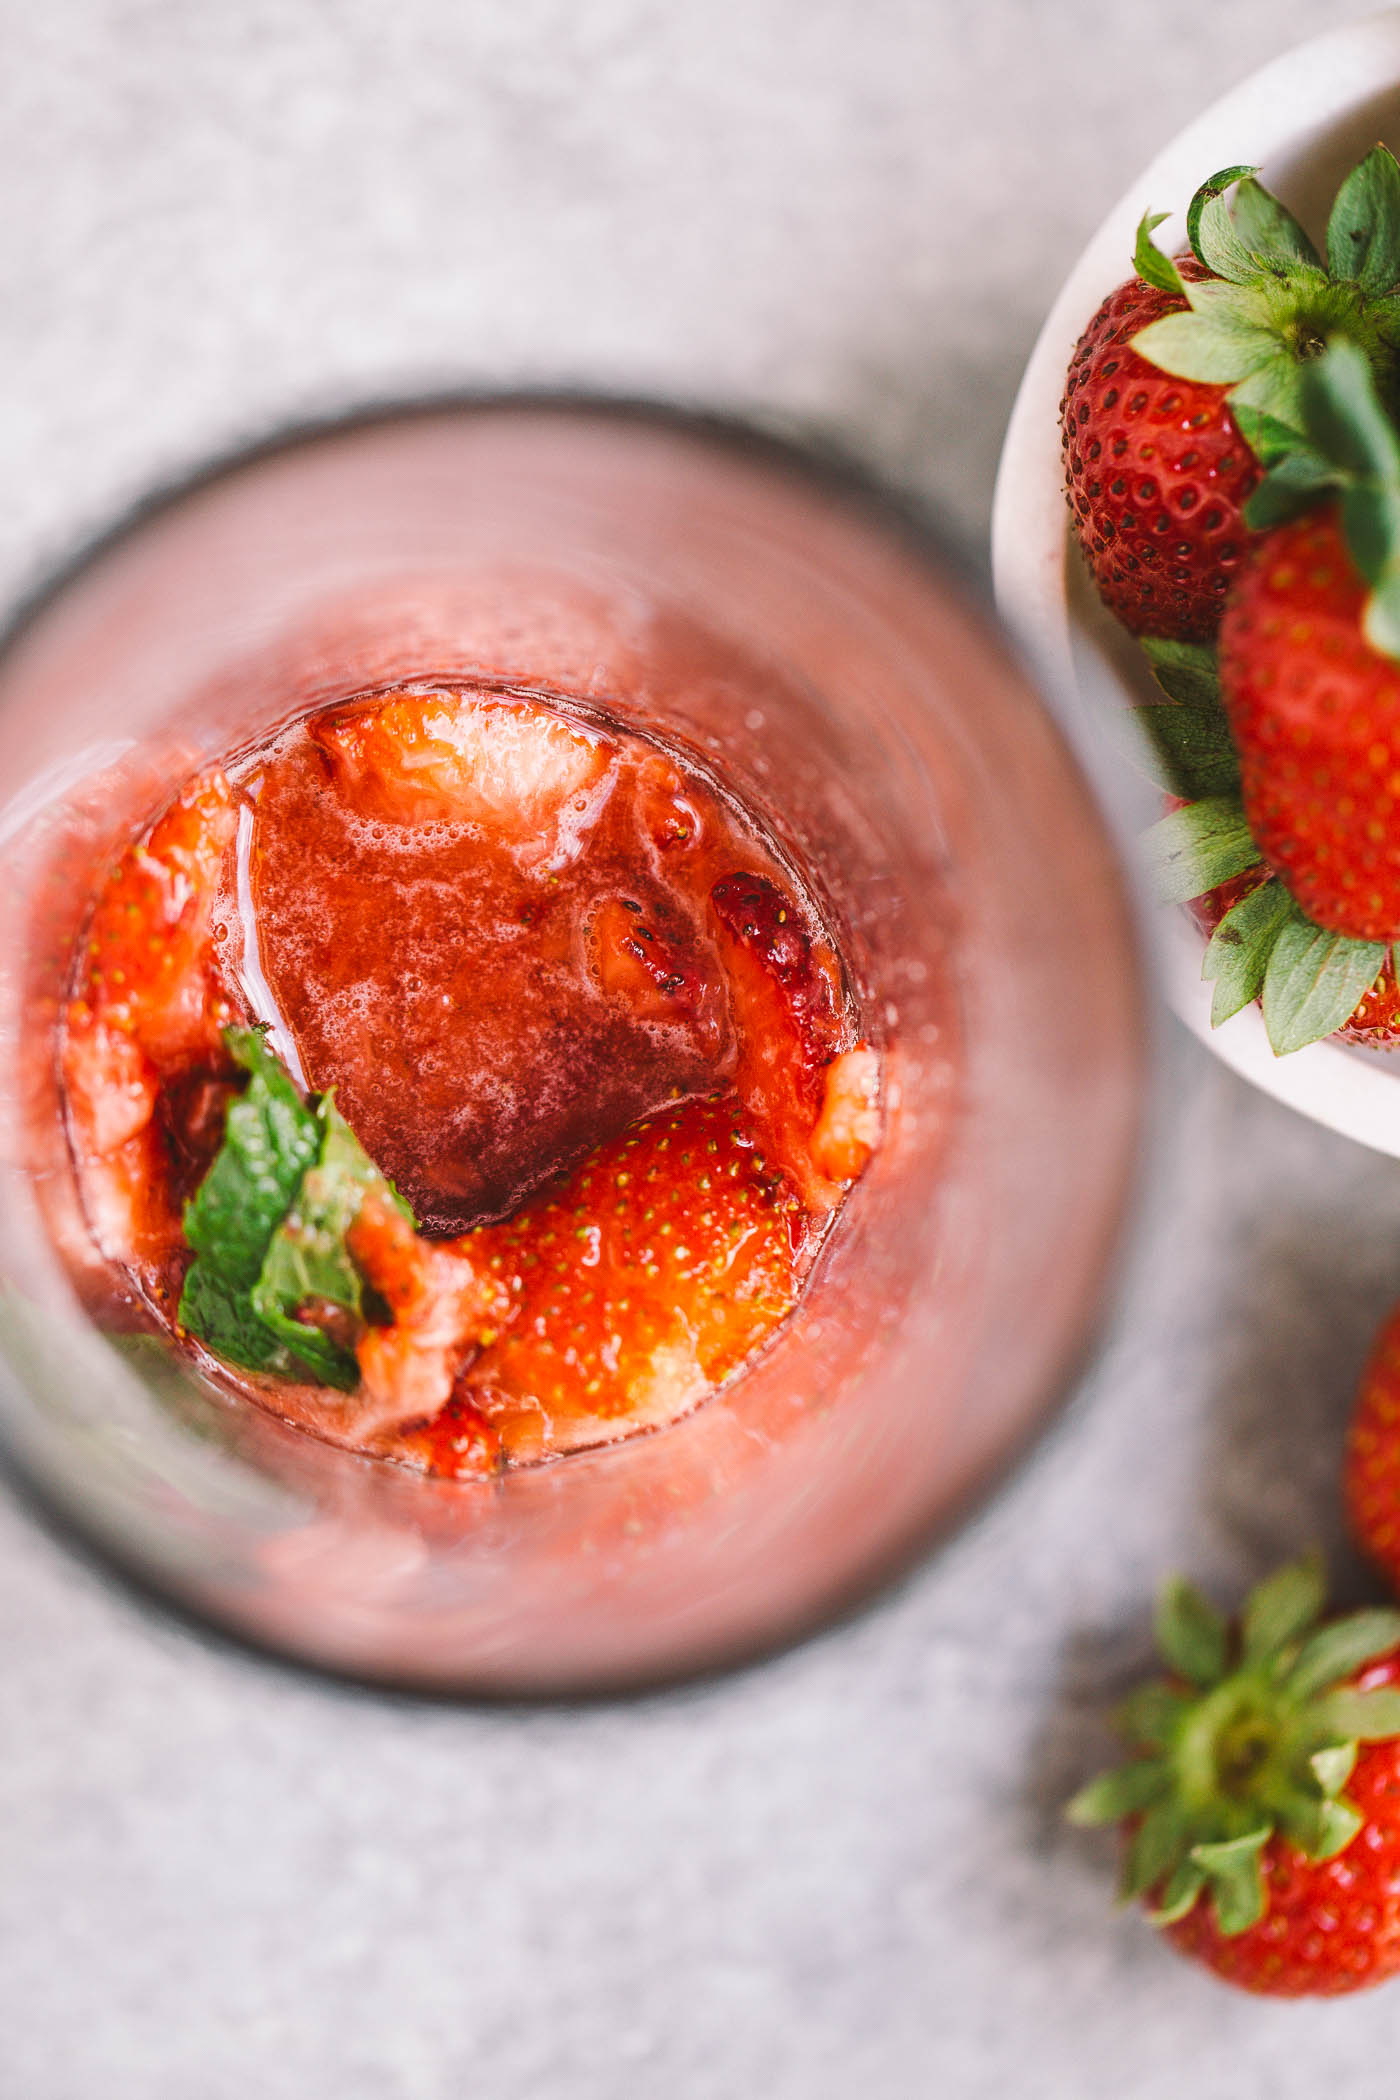 classic mojitos get a spicy strawberry twist in this easy cocktail recipe for spicy strawberry mojitos! fresh strawberries muddled with lime juice, mint, & spicy rum for the perfectly balanced spicy & sweet cocktails. these spicy strawberry mojitos will be your new favorite! #mojitos #easycocktail #cocktailrecipe #strawberrymojitos #spicystrawberrymojitos #playswellwithbutter